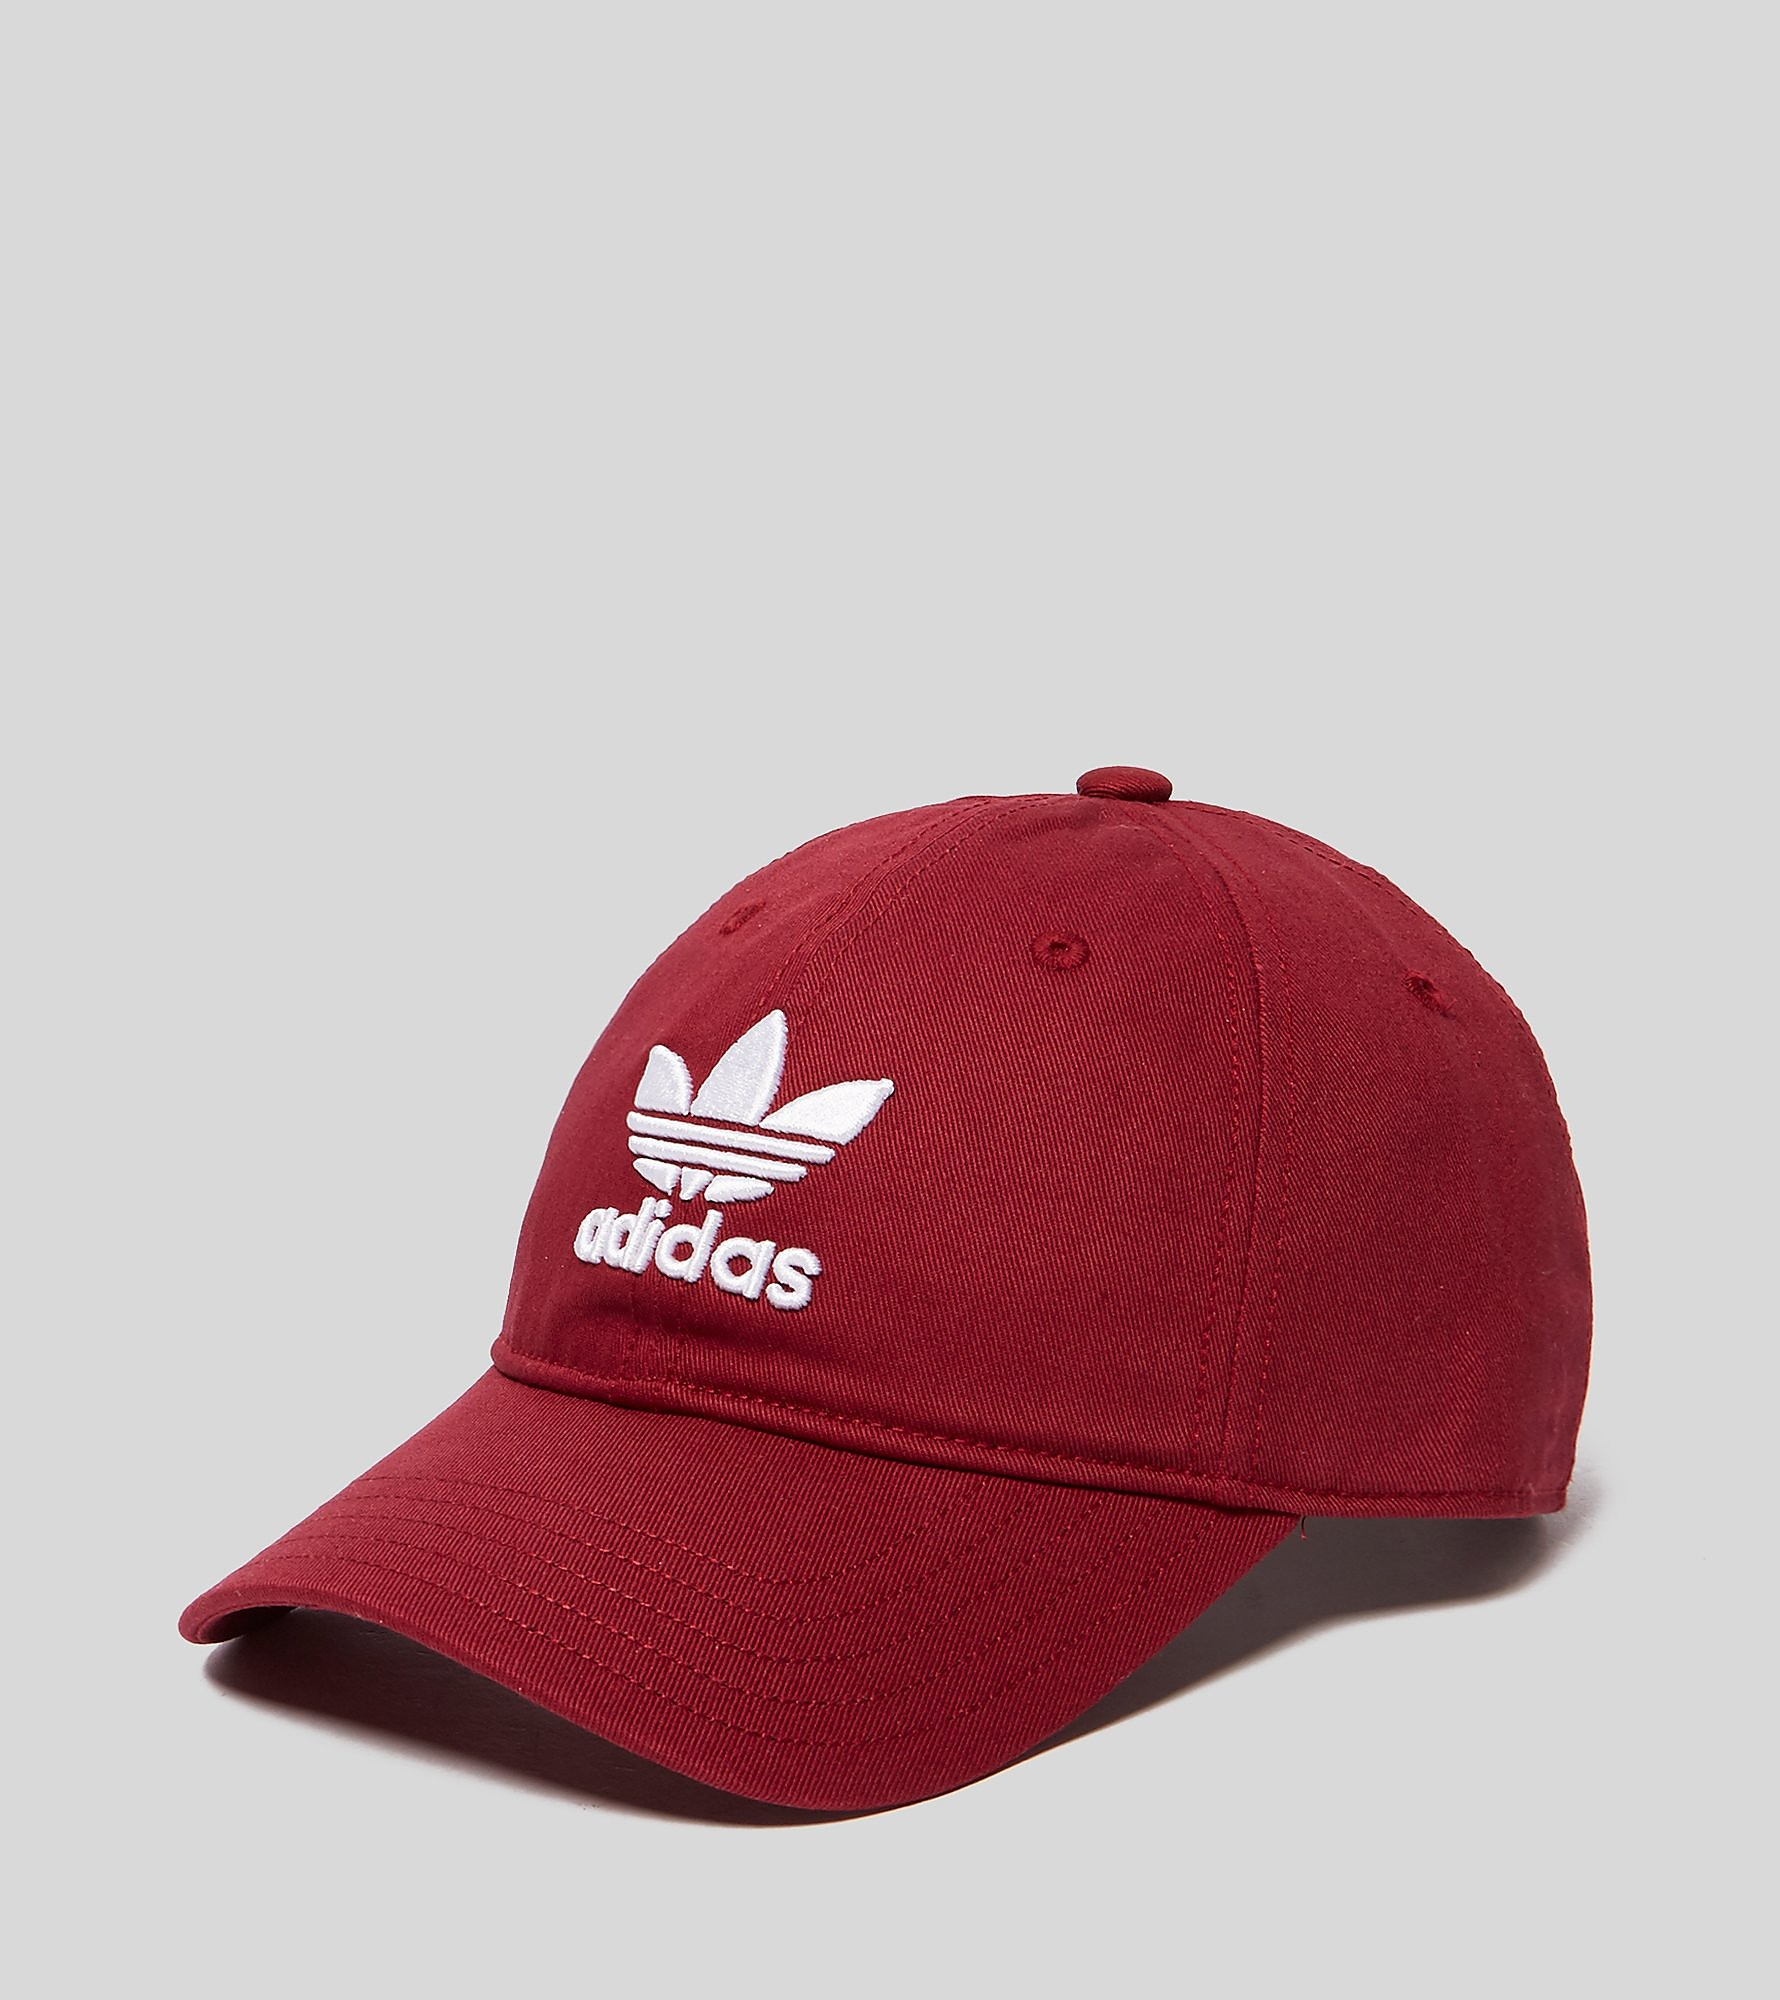 adidas Originals Trefoil Curved Cap